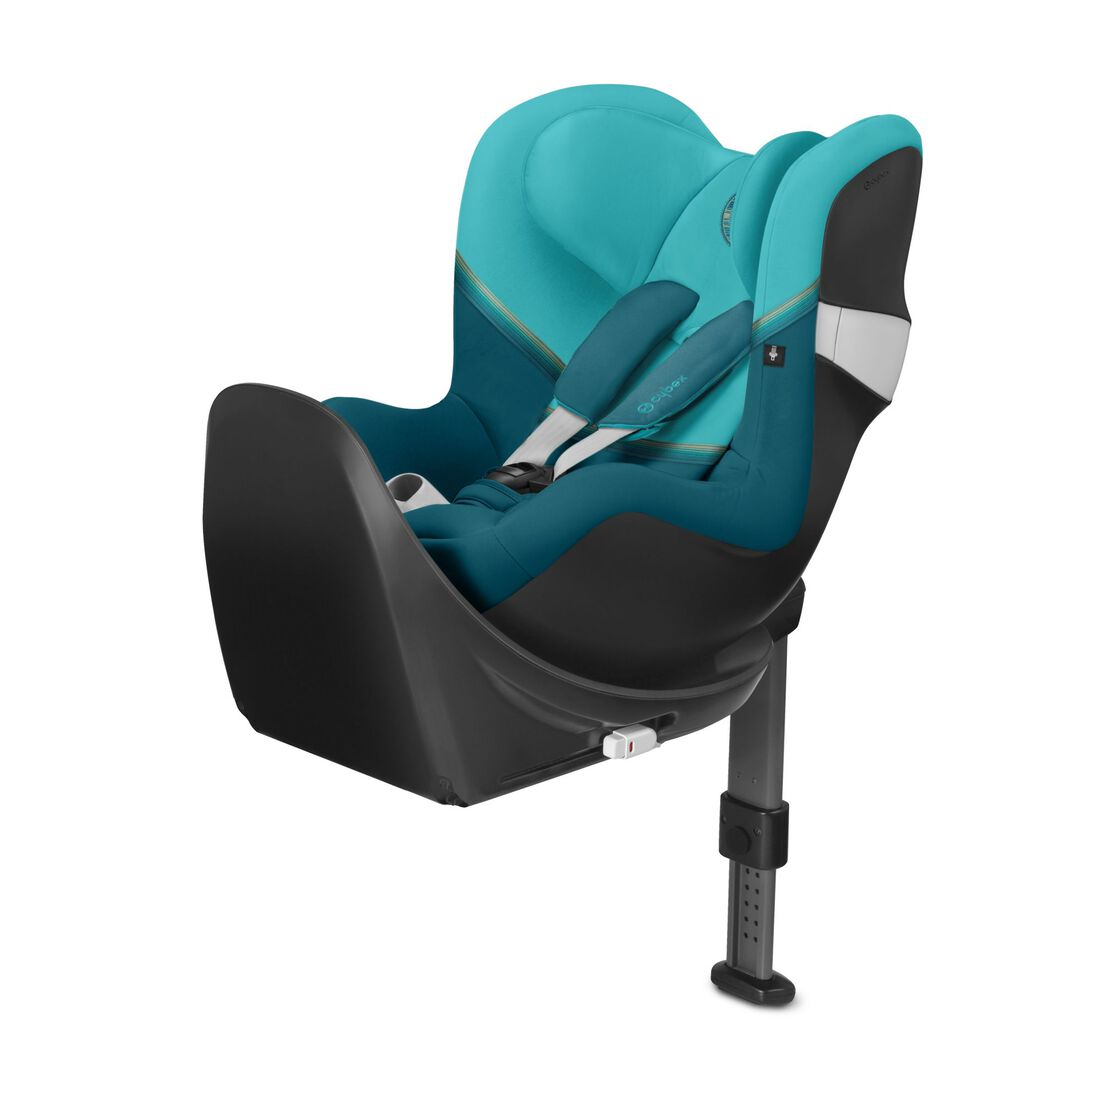 CYBEX Sirona M2 i-Size - River Blue in River Blue large image number 2